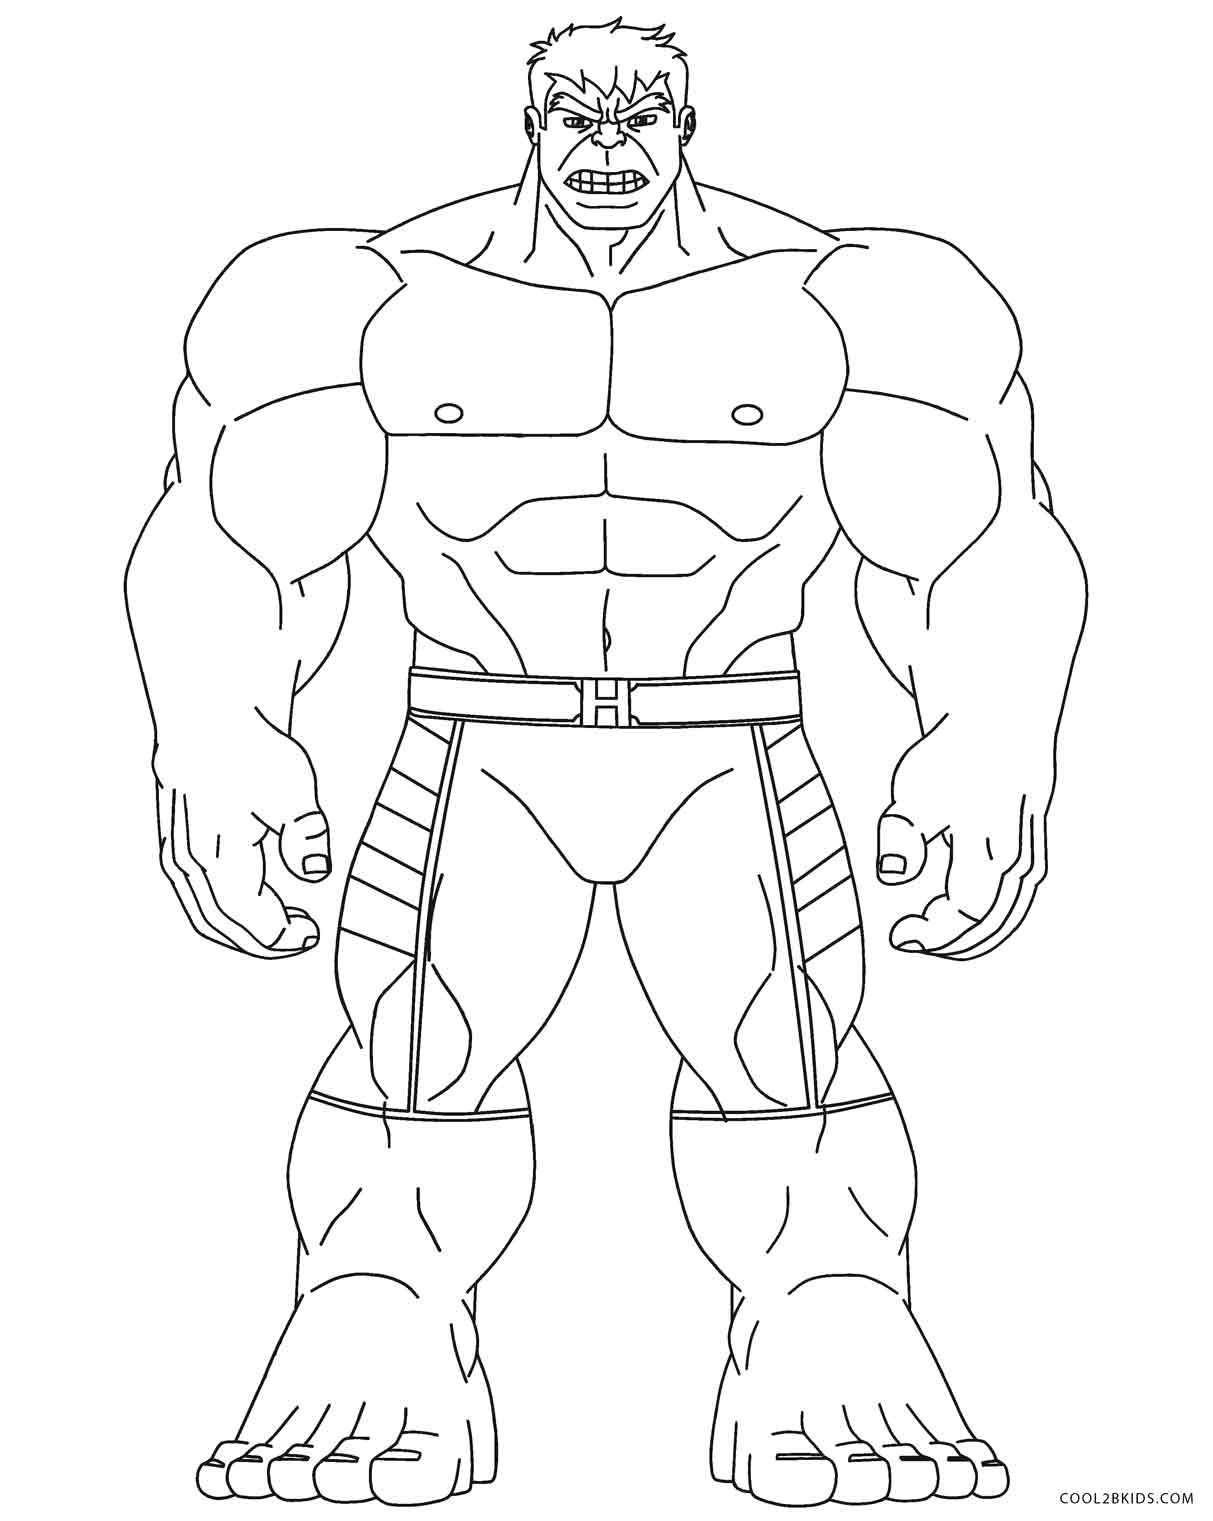 incredible hulk coloring pages - free printable hulk coloring pages for kids cool2bkids